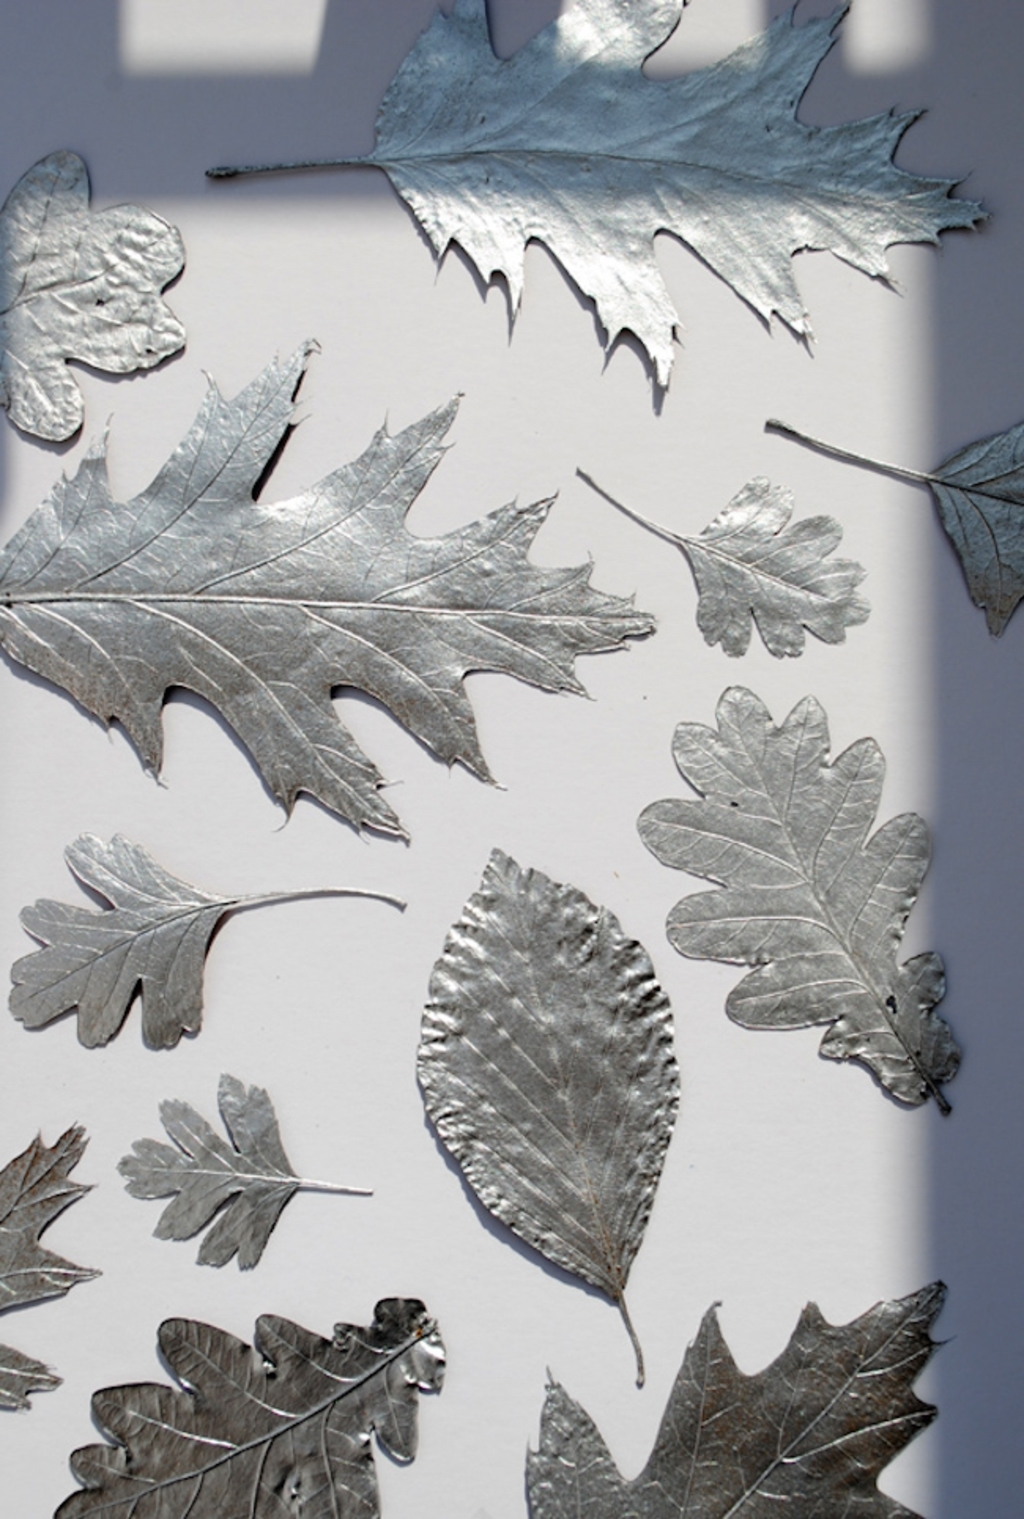 Diy Projects: Leaf Relief Craft To Use As Wall Art – 8 Creative Intended For Latest Seasonal Wall Art (Gallery 14 of 15)